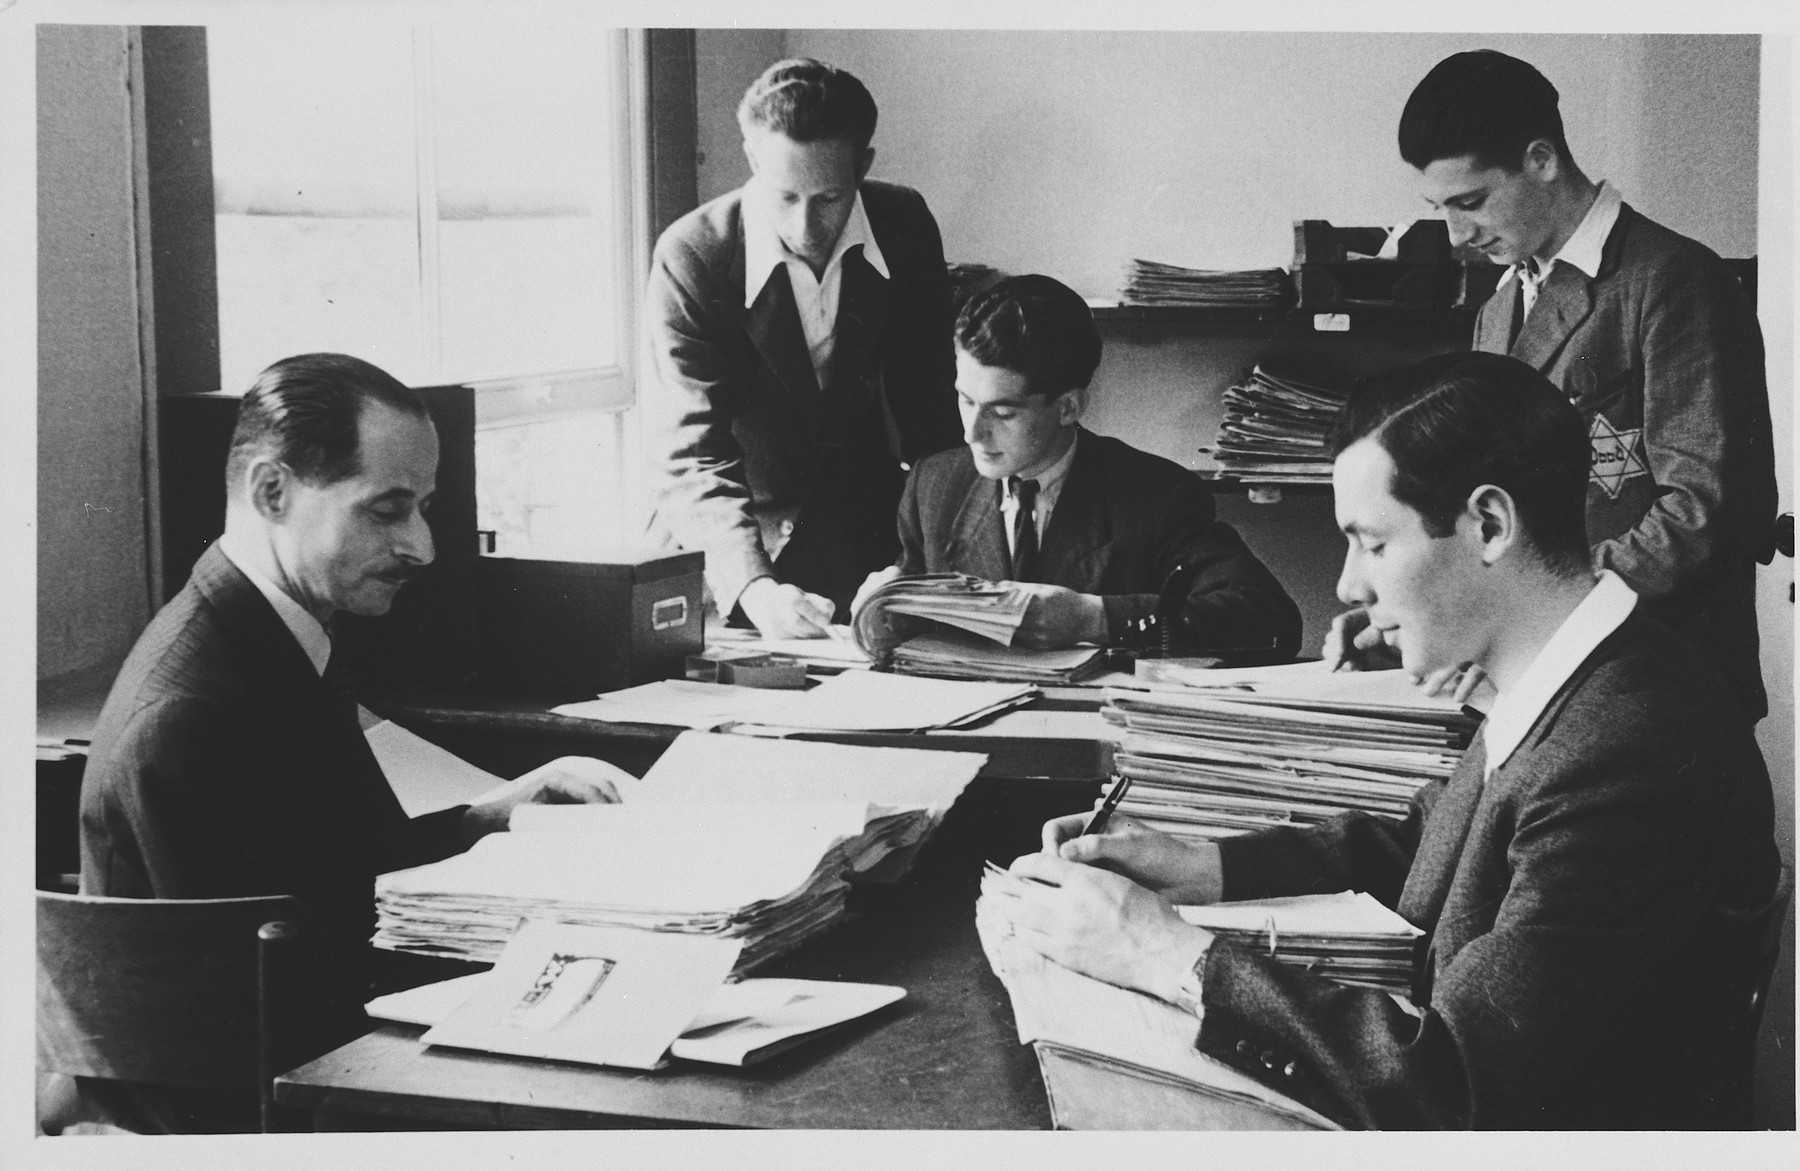 Dutch Jews, some wearing Jewish Stars, work in the newspaper office.  Pictured on the far left is Kurt Zielenziger.